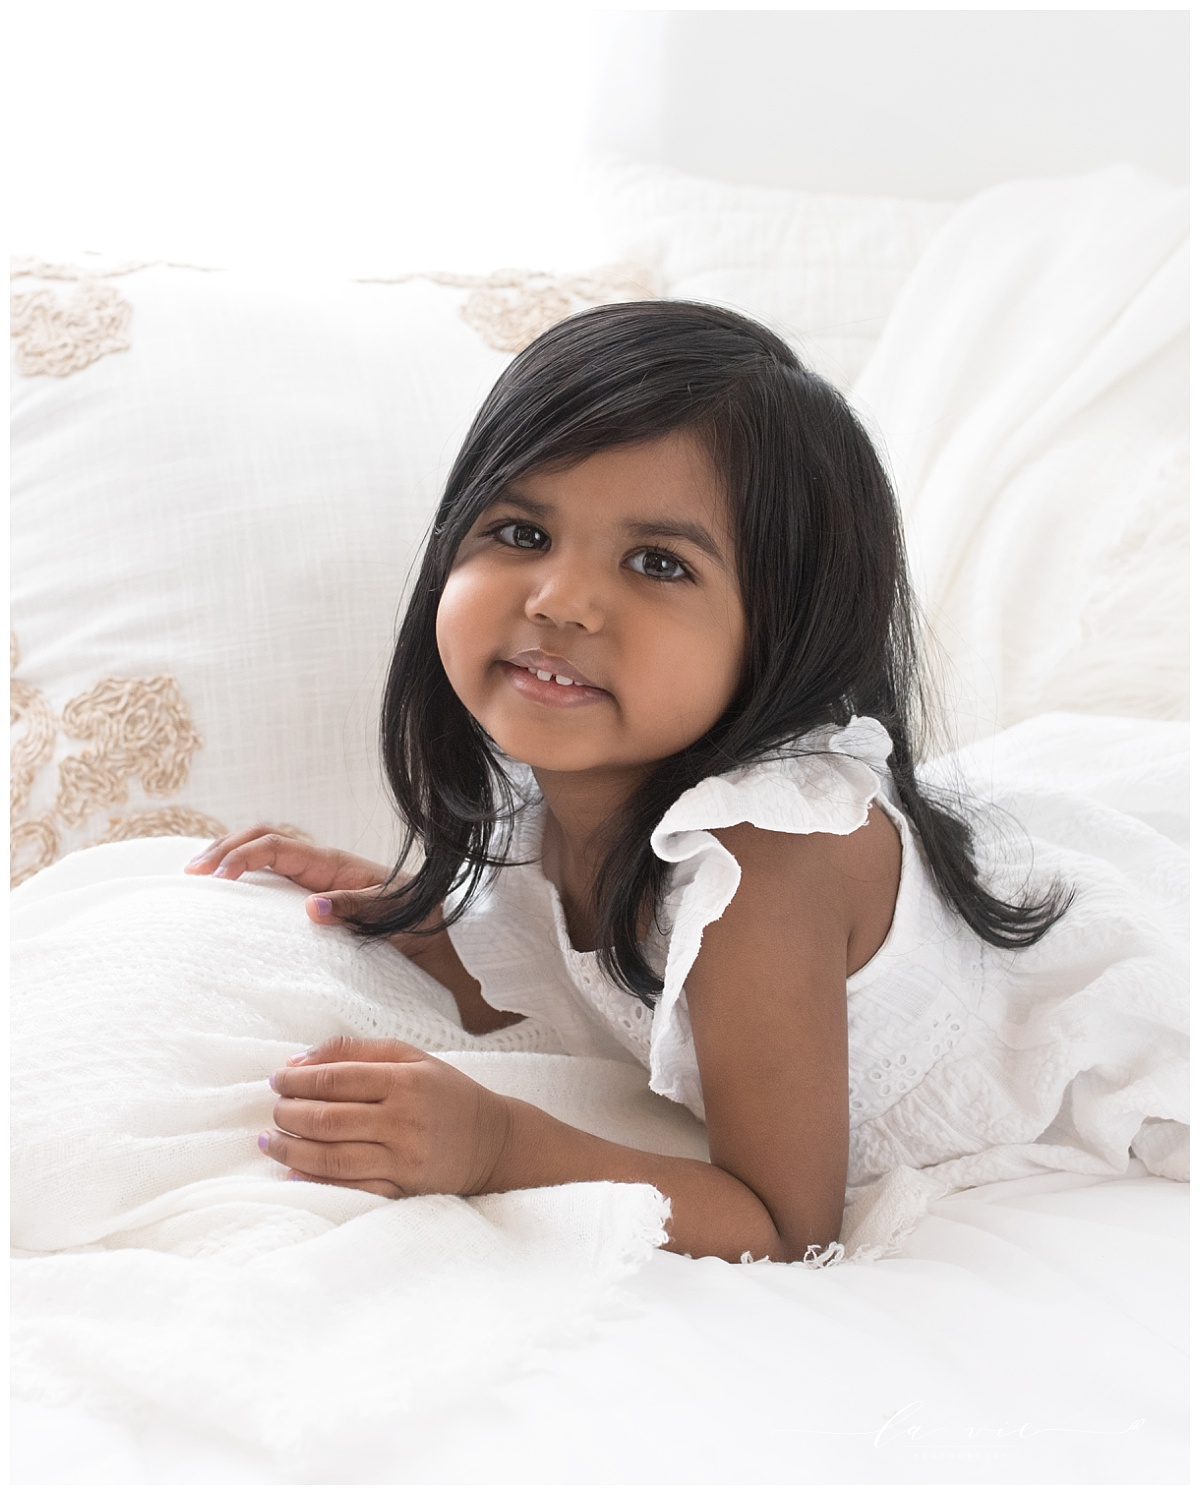 Closeup portrait of toddler girl with dark hair on white bed